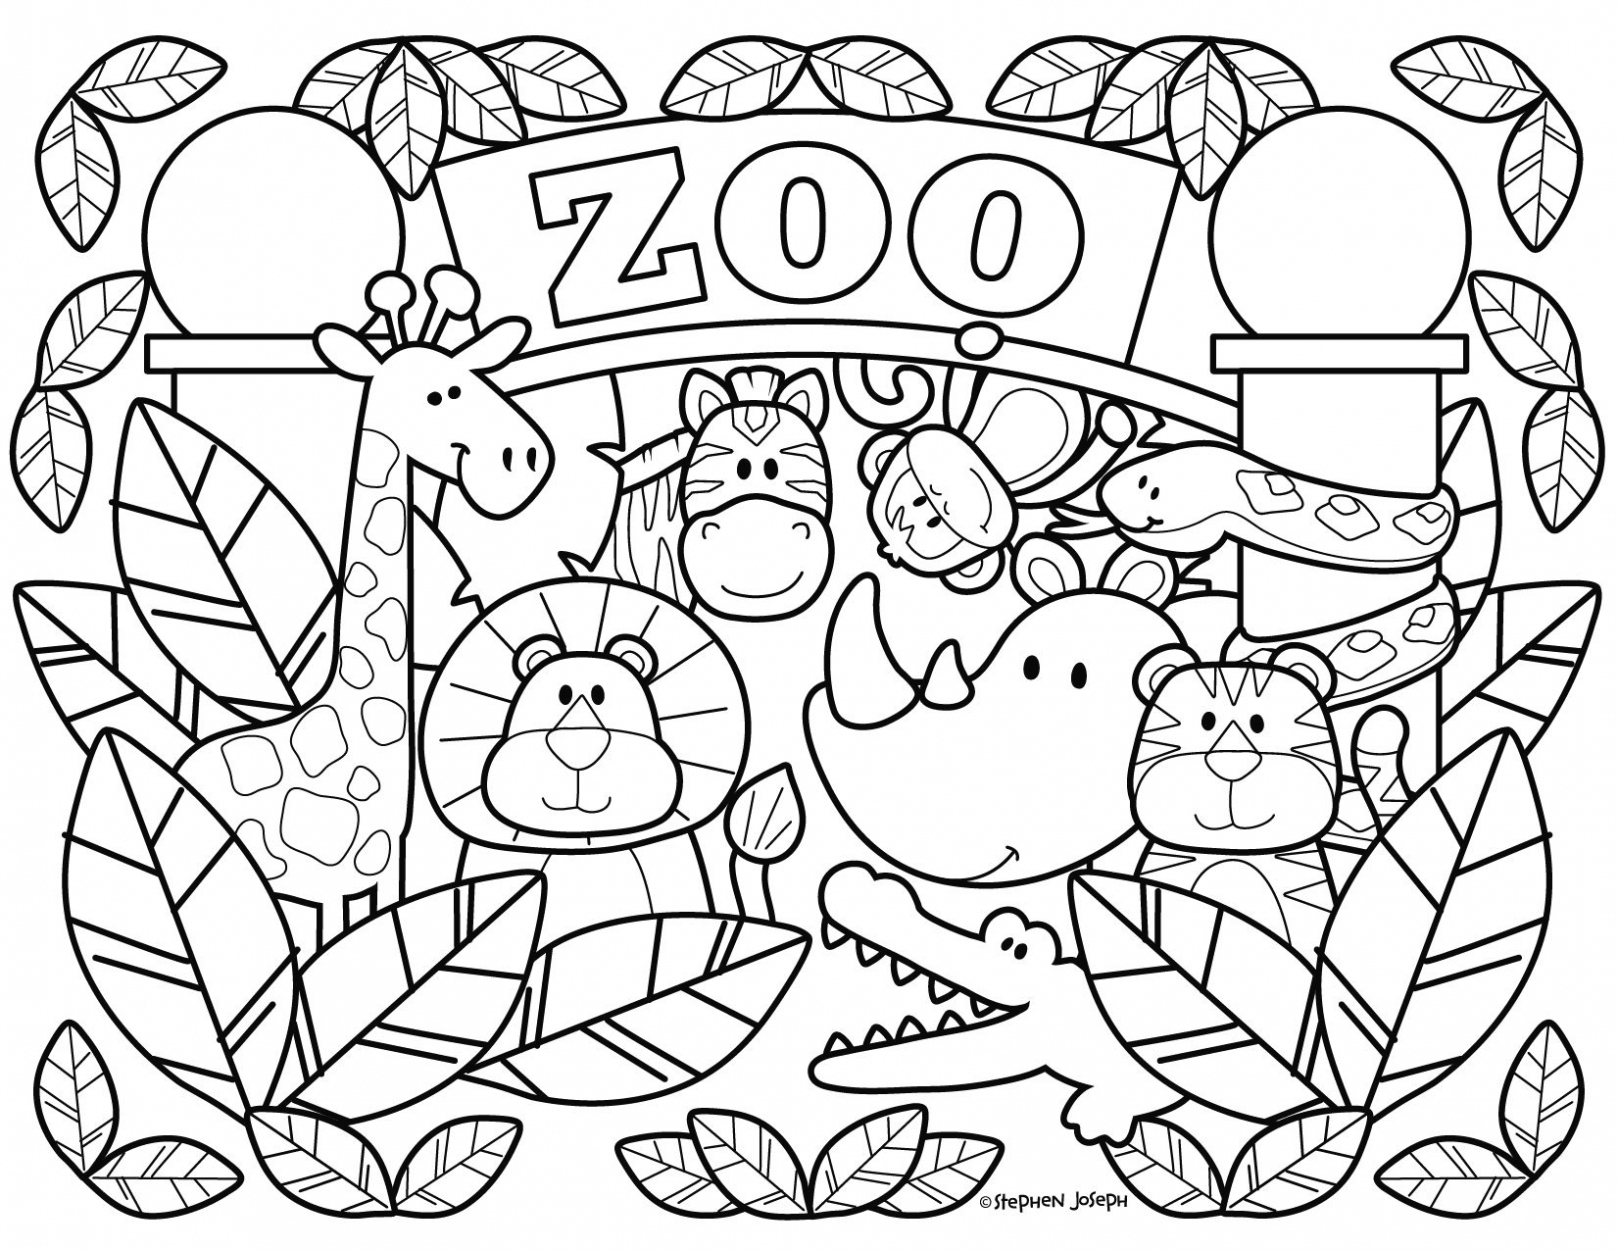 zoo coloring page coloring for kids coloring games for girls coloring coloring zoo page